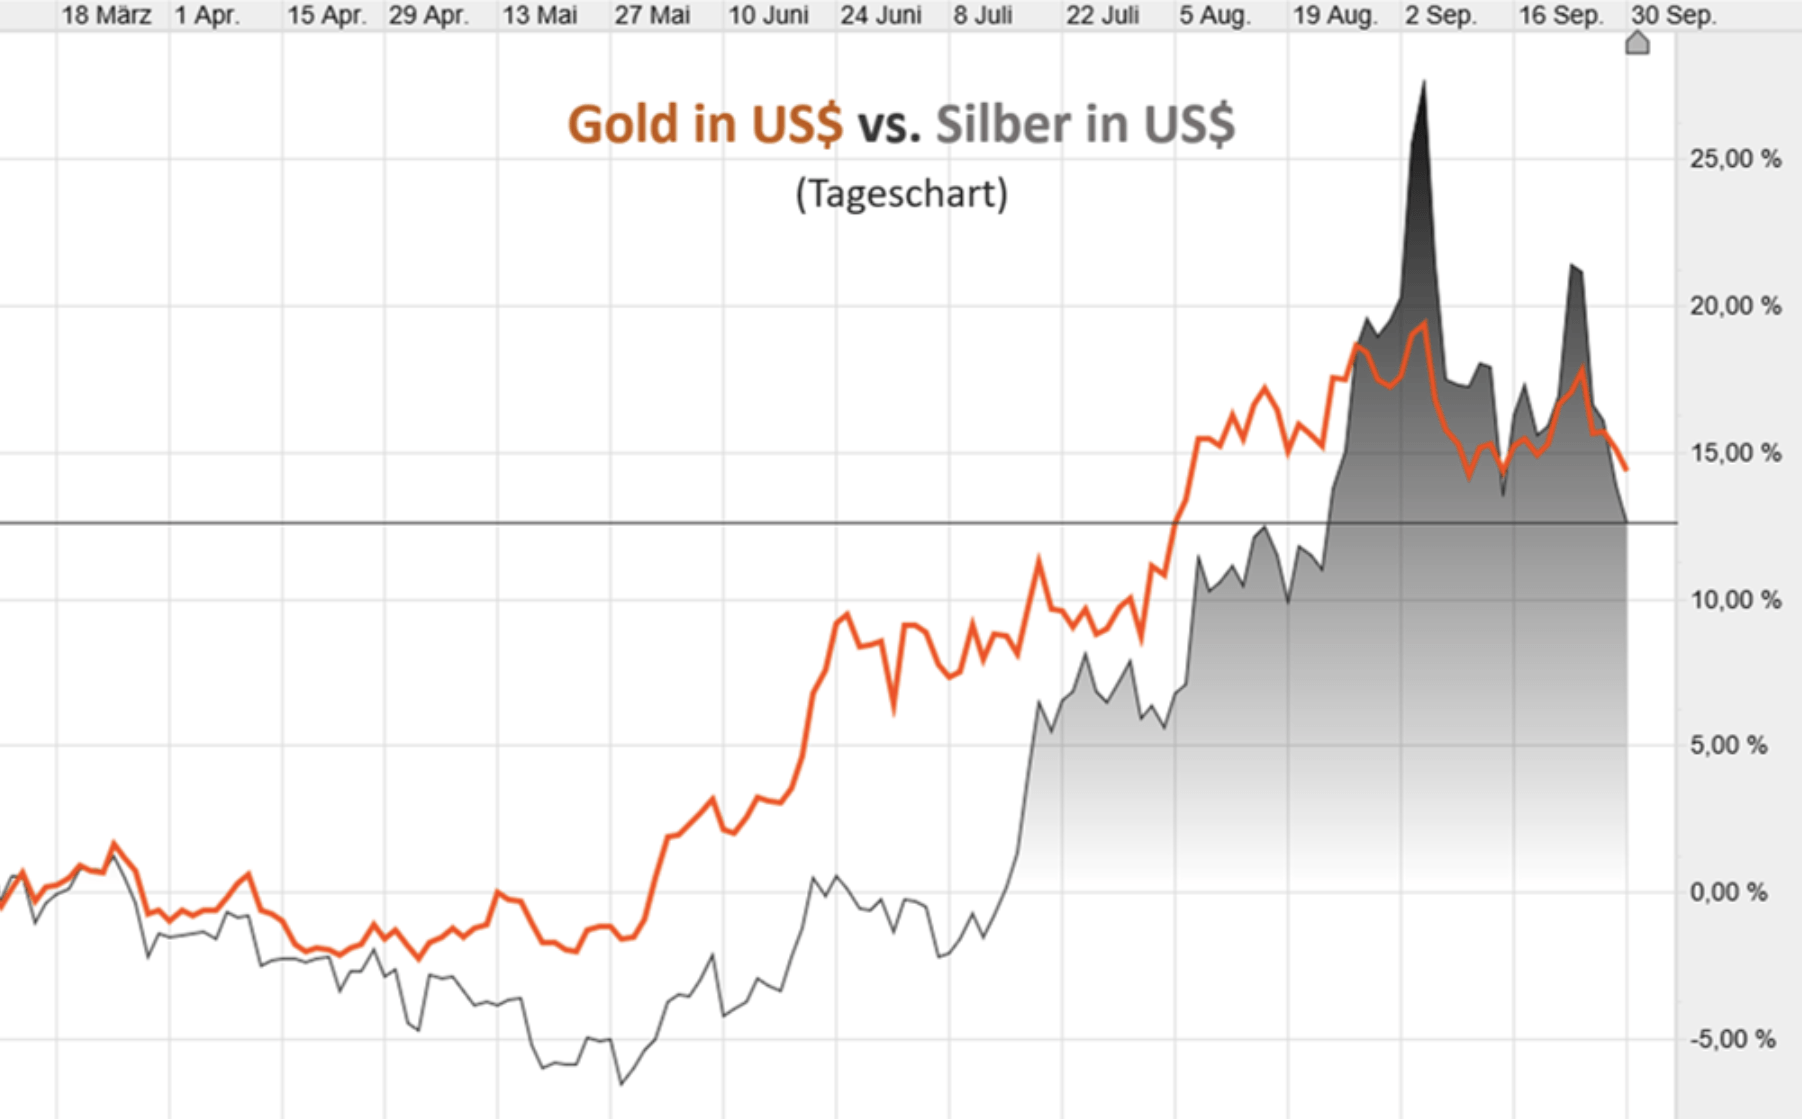 Gold vs Silber in USD